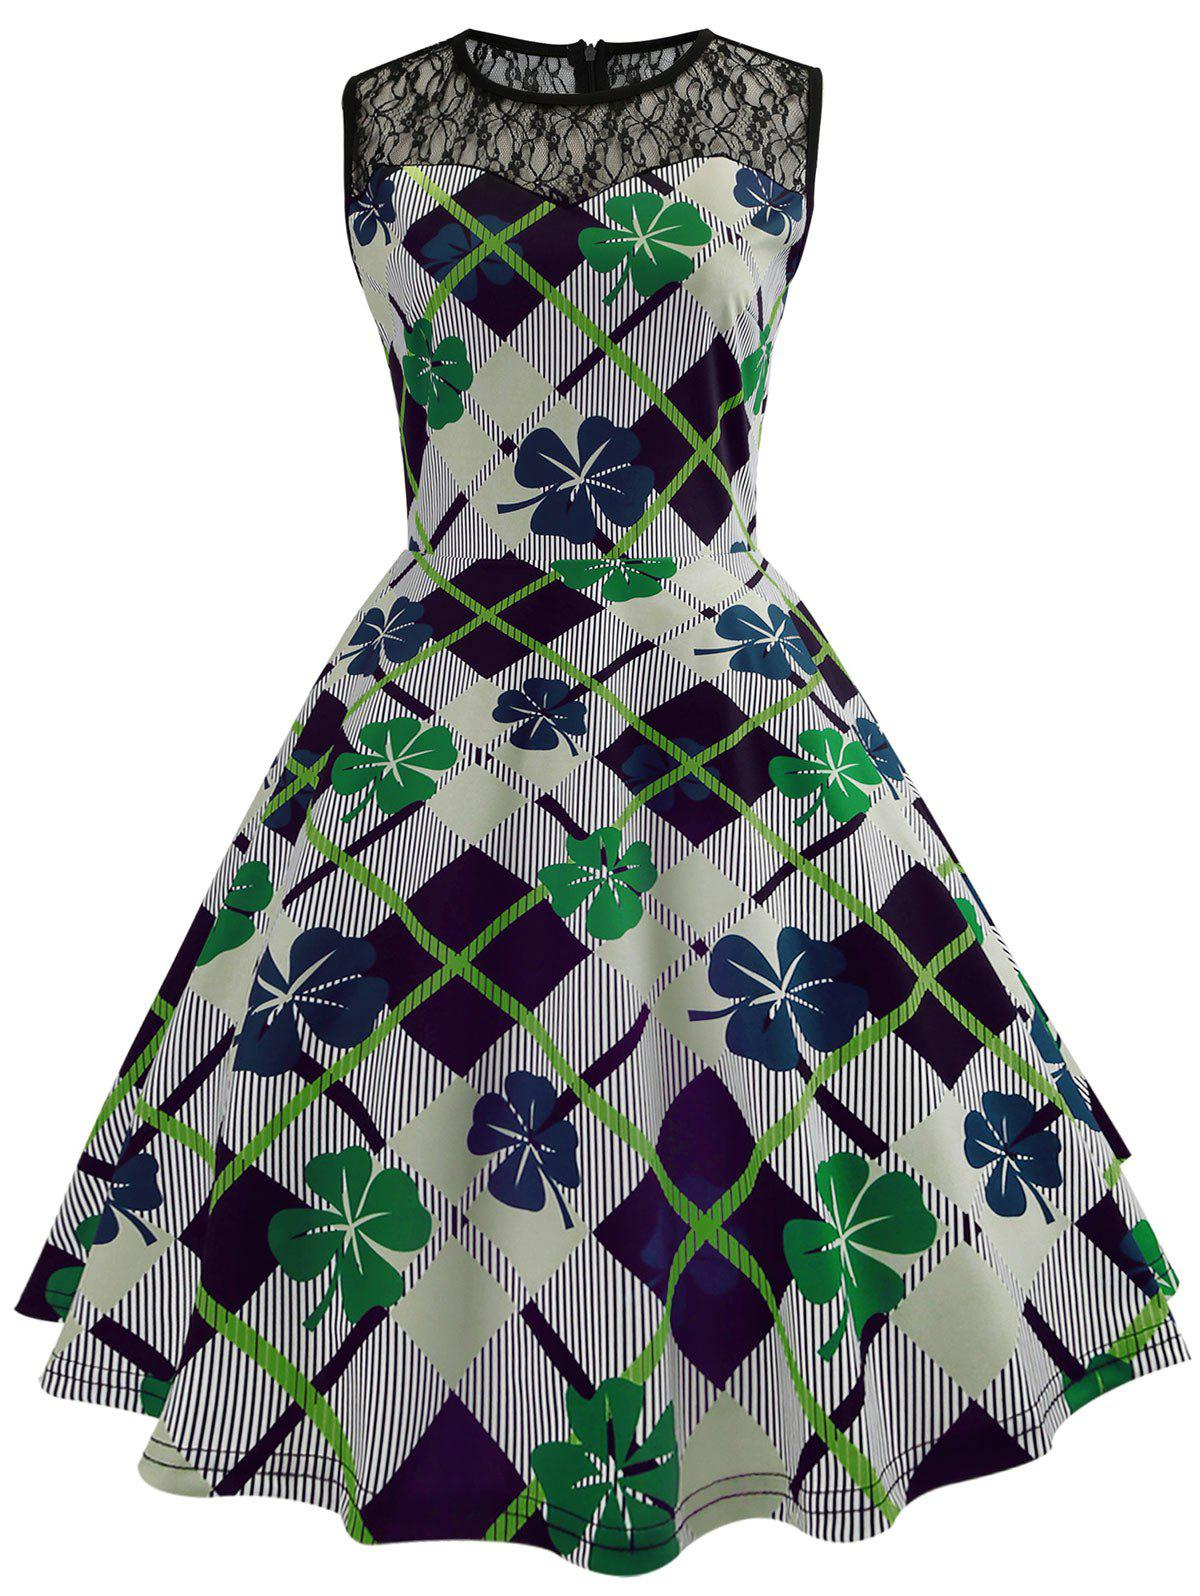 Sale Vintage Lace Insert Leaf Print Sleeveless Dress